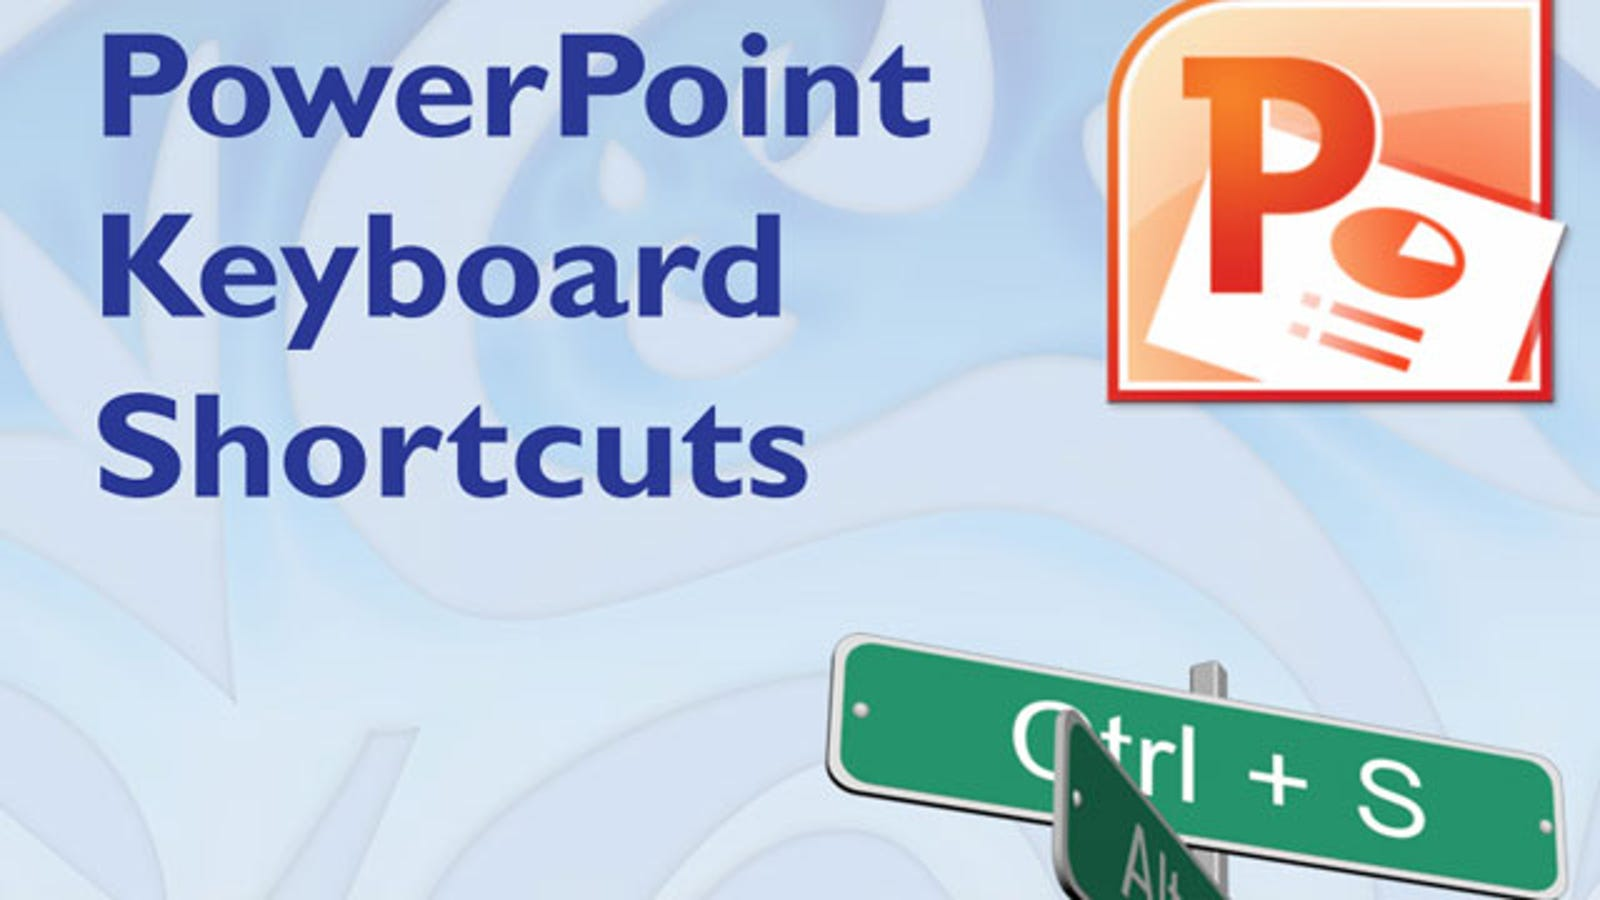 Learn All The Powerpoint Keyboard Shortcuts With This Free Guide